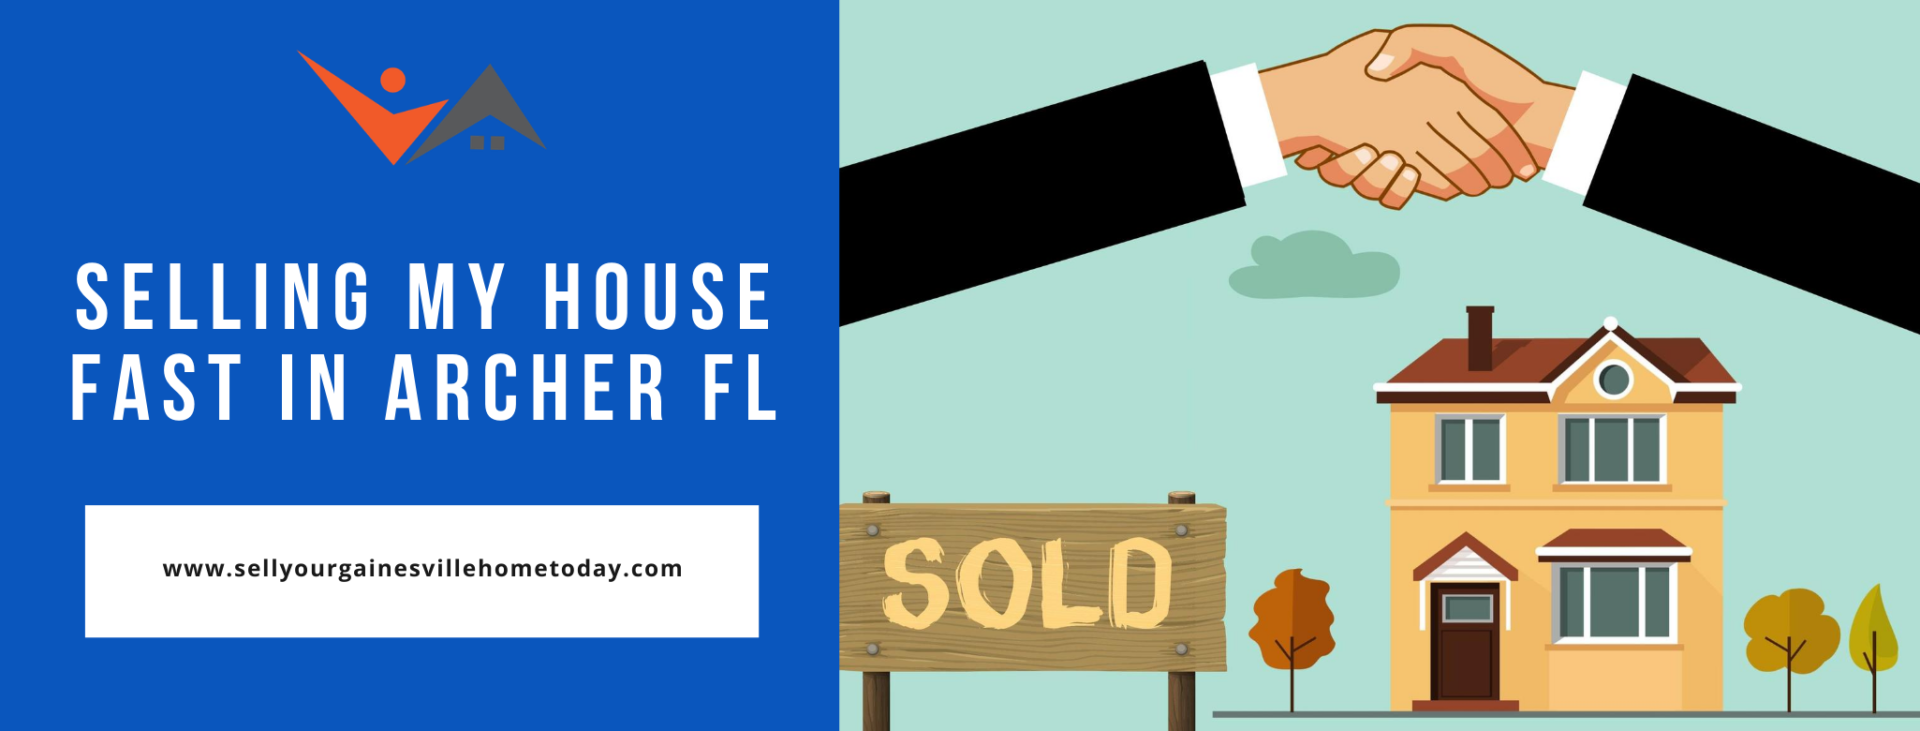 We buy properties in Archer FL